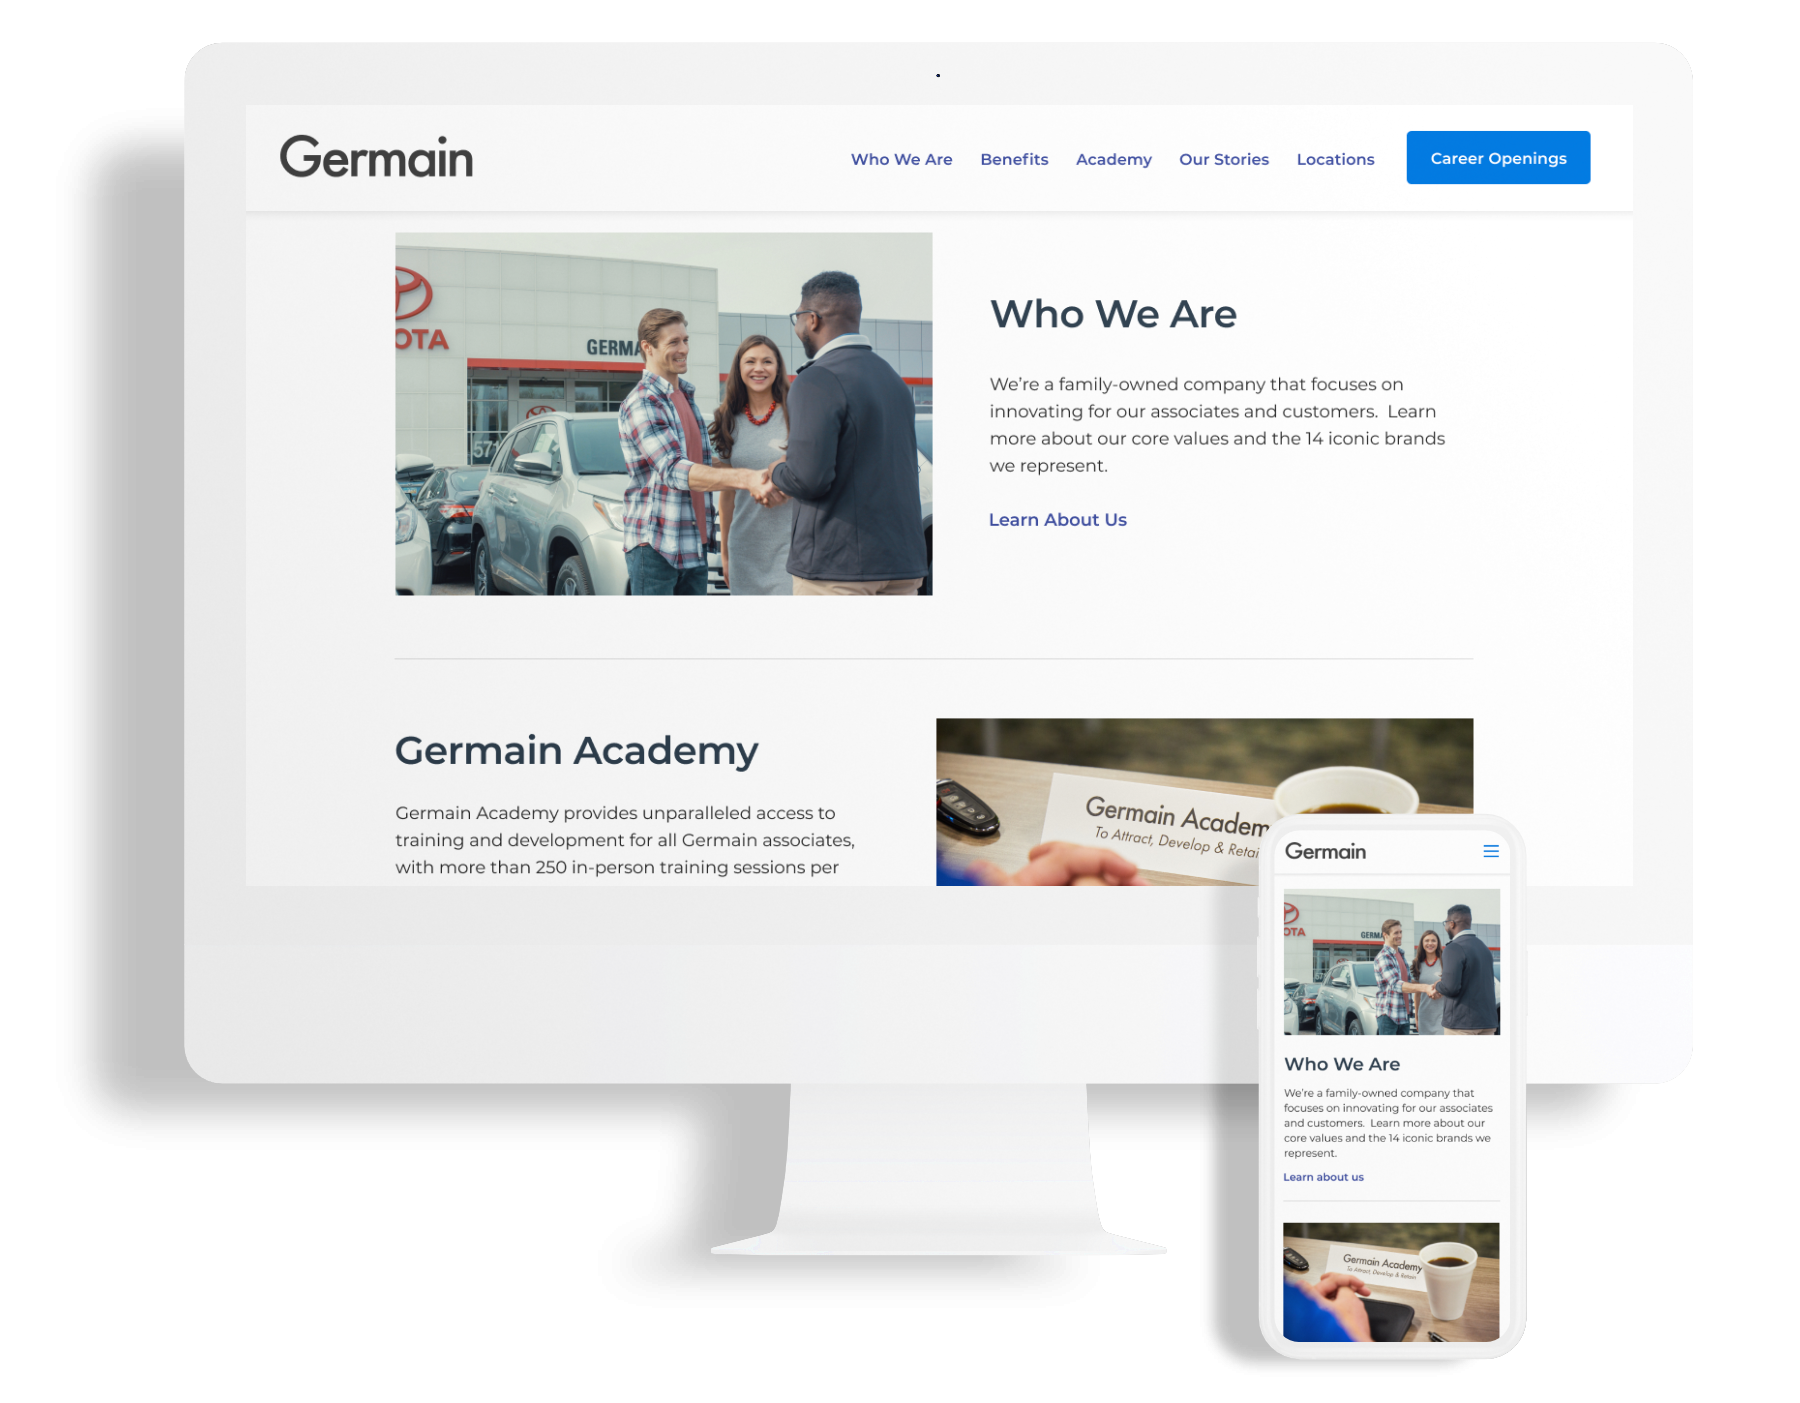 Desktop and mobile phone displaying UX designs of Germain's career site main page